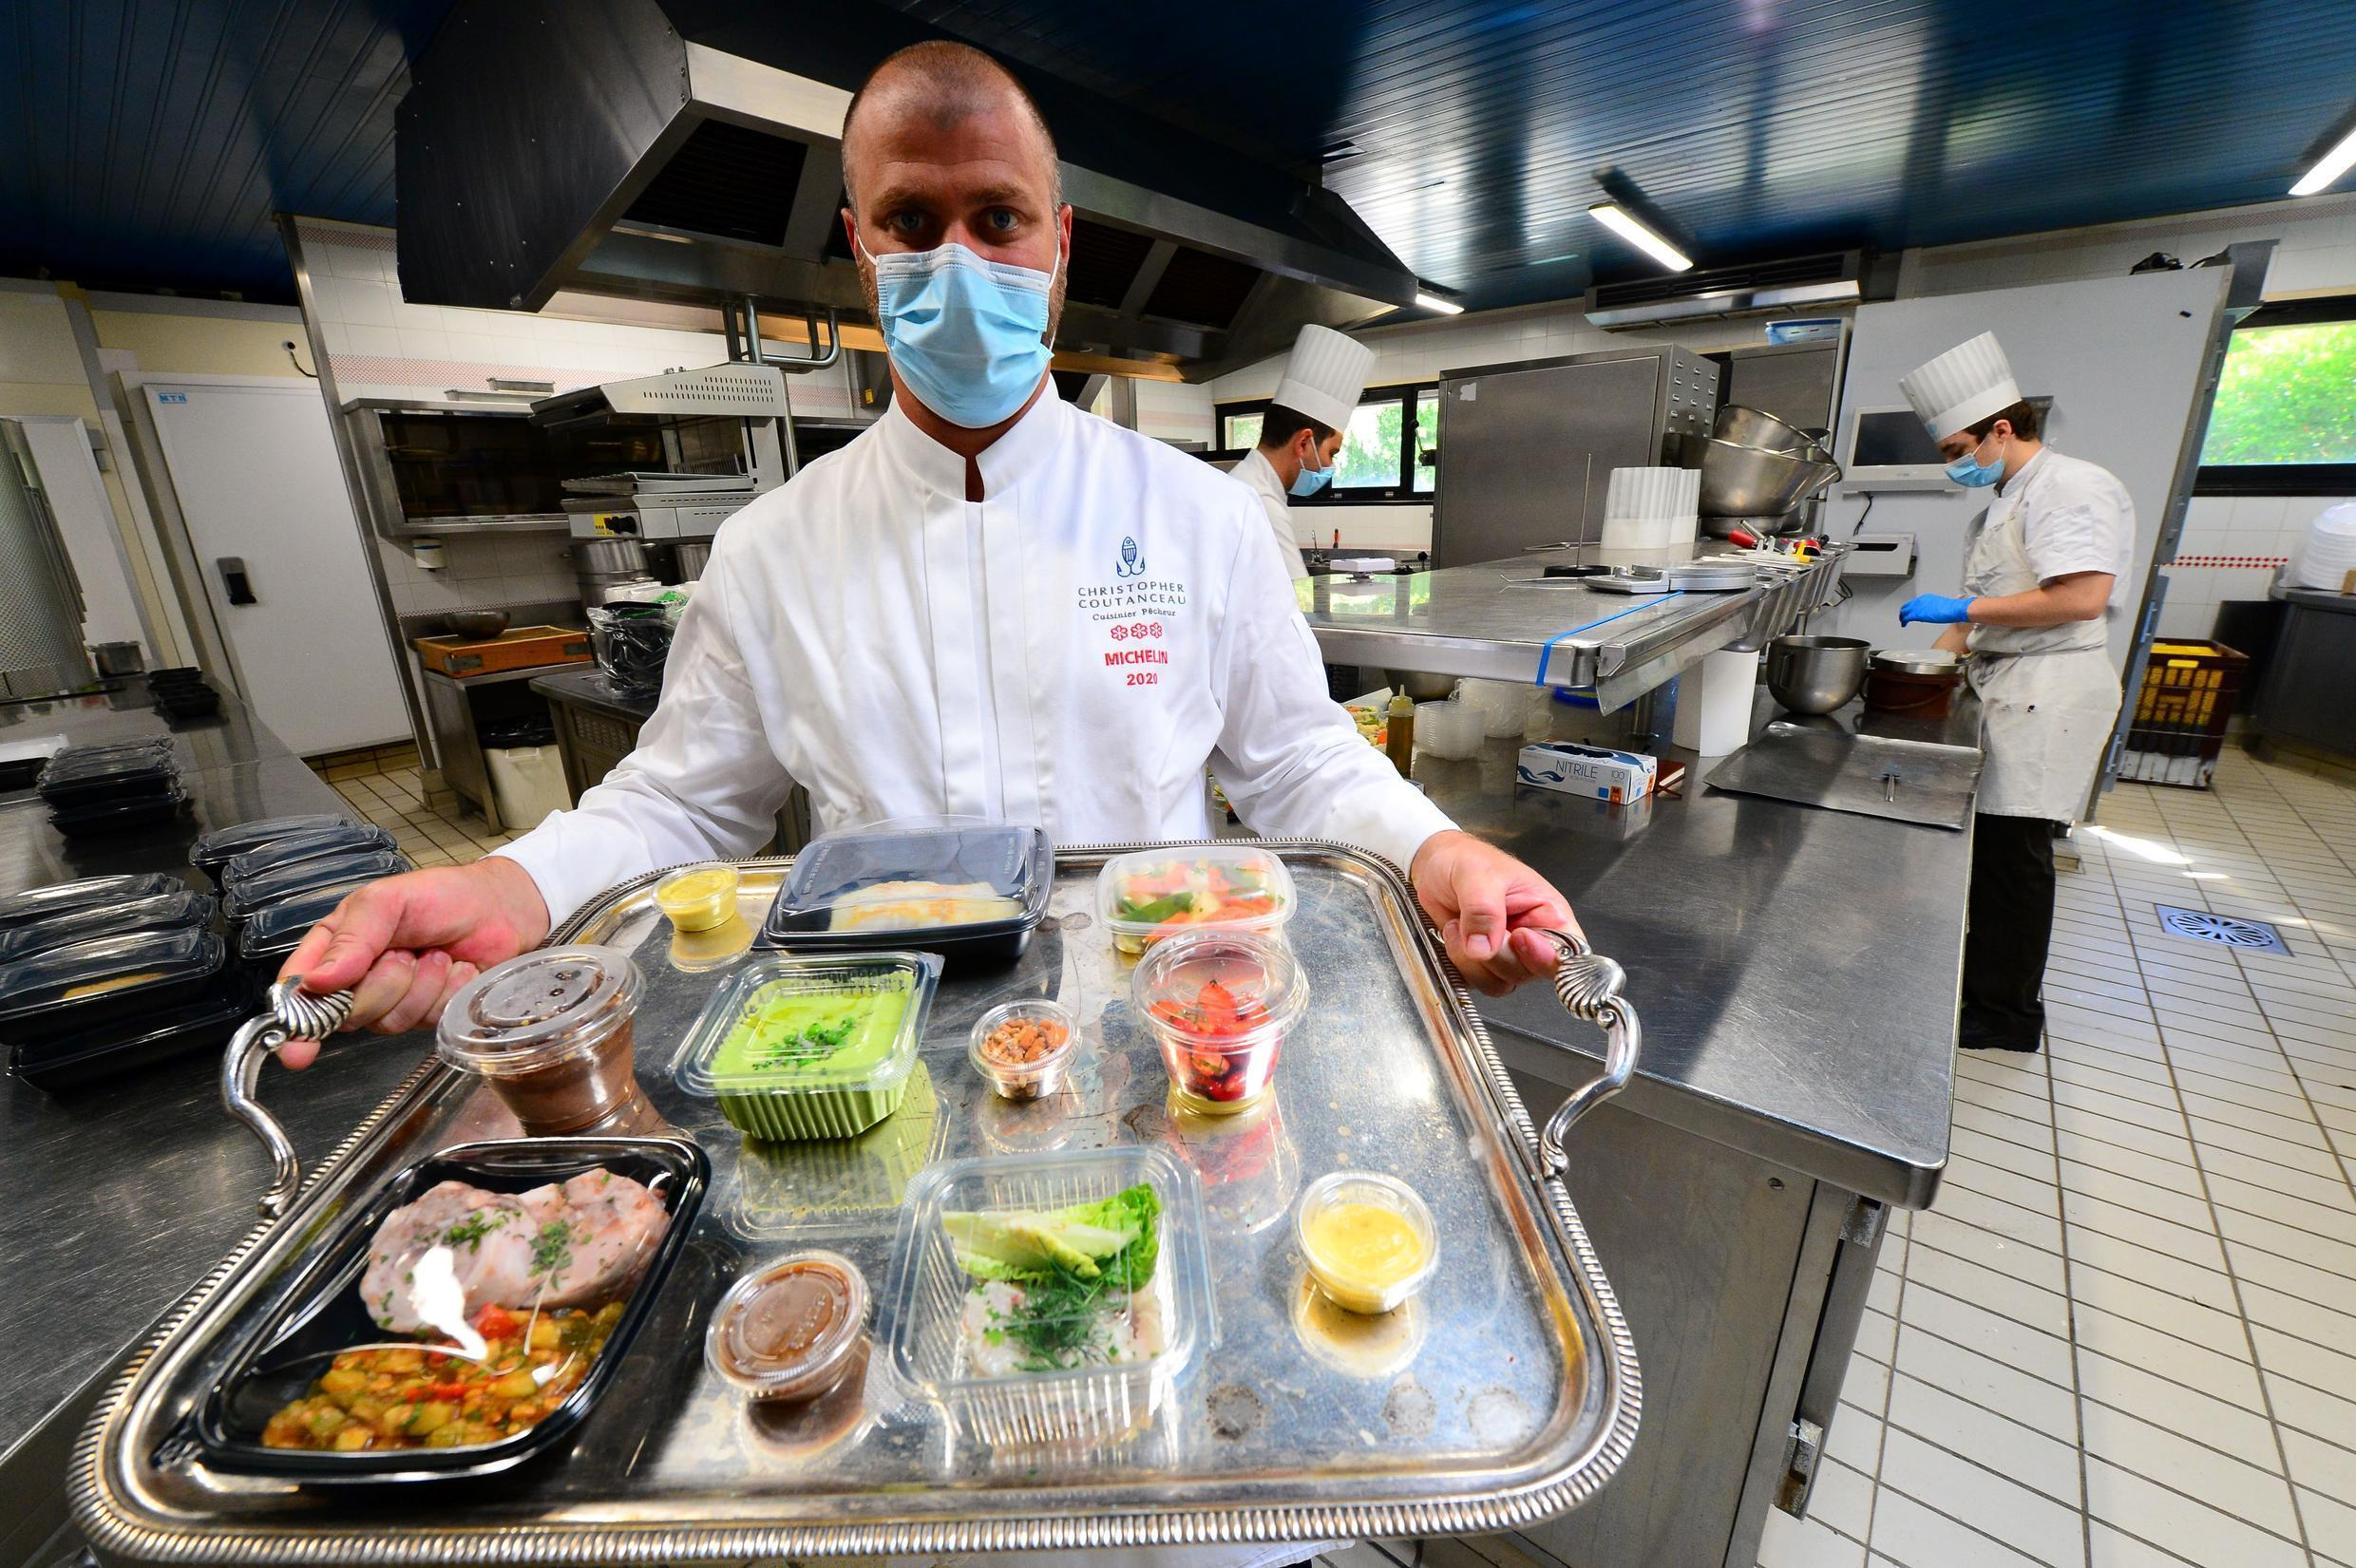 French chef Christopher Coutanceau, who won this year the maximum three Michelin stars, prepares take away meals,on May 6, 2020 at his restaurant in La Rochelle, as the country is under lockdown to stop the spread of the Covid-19 pandemic caused by the novel coronavirus.